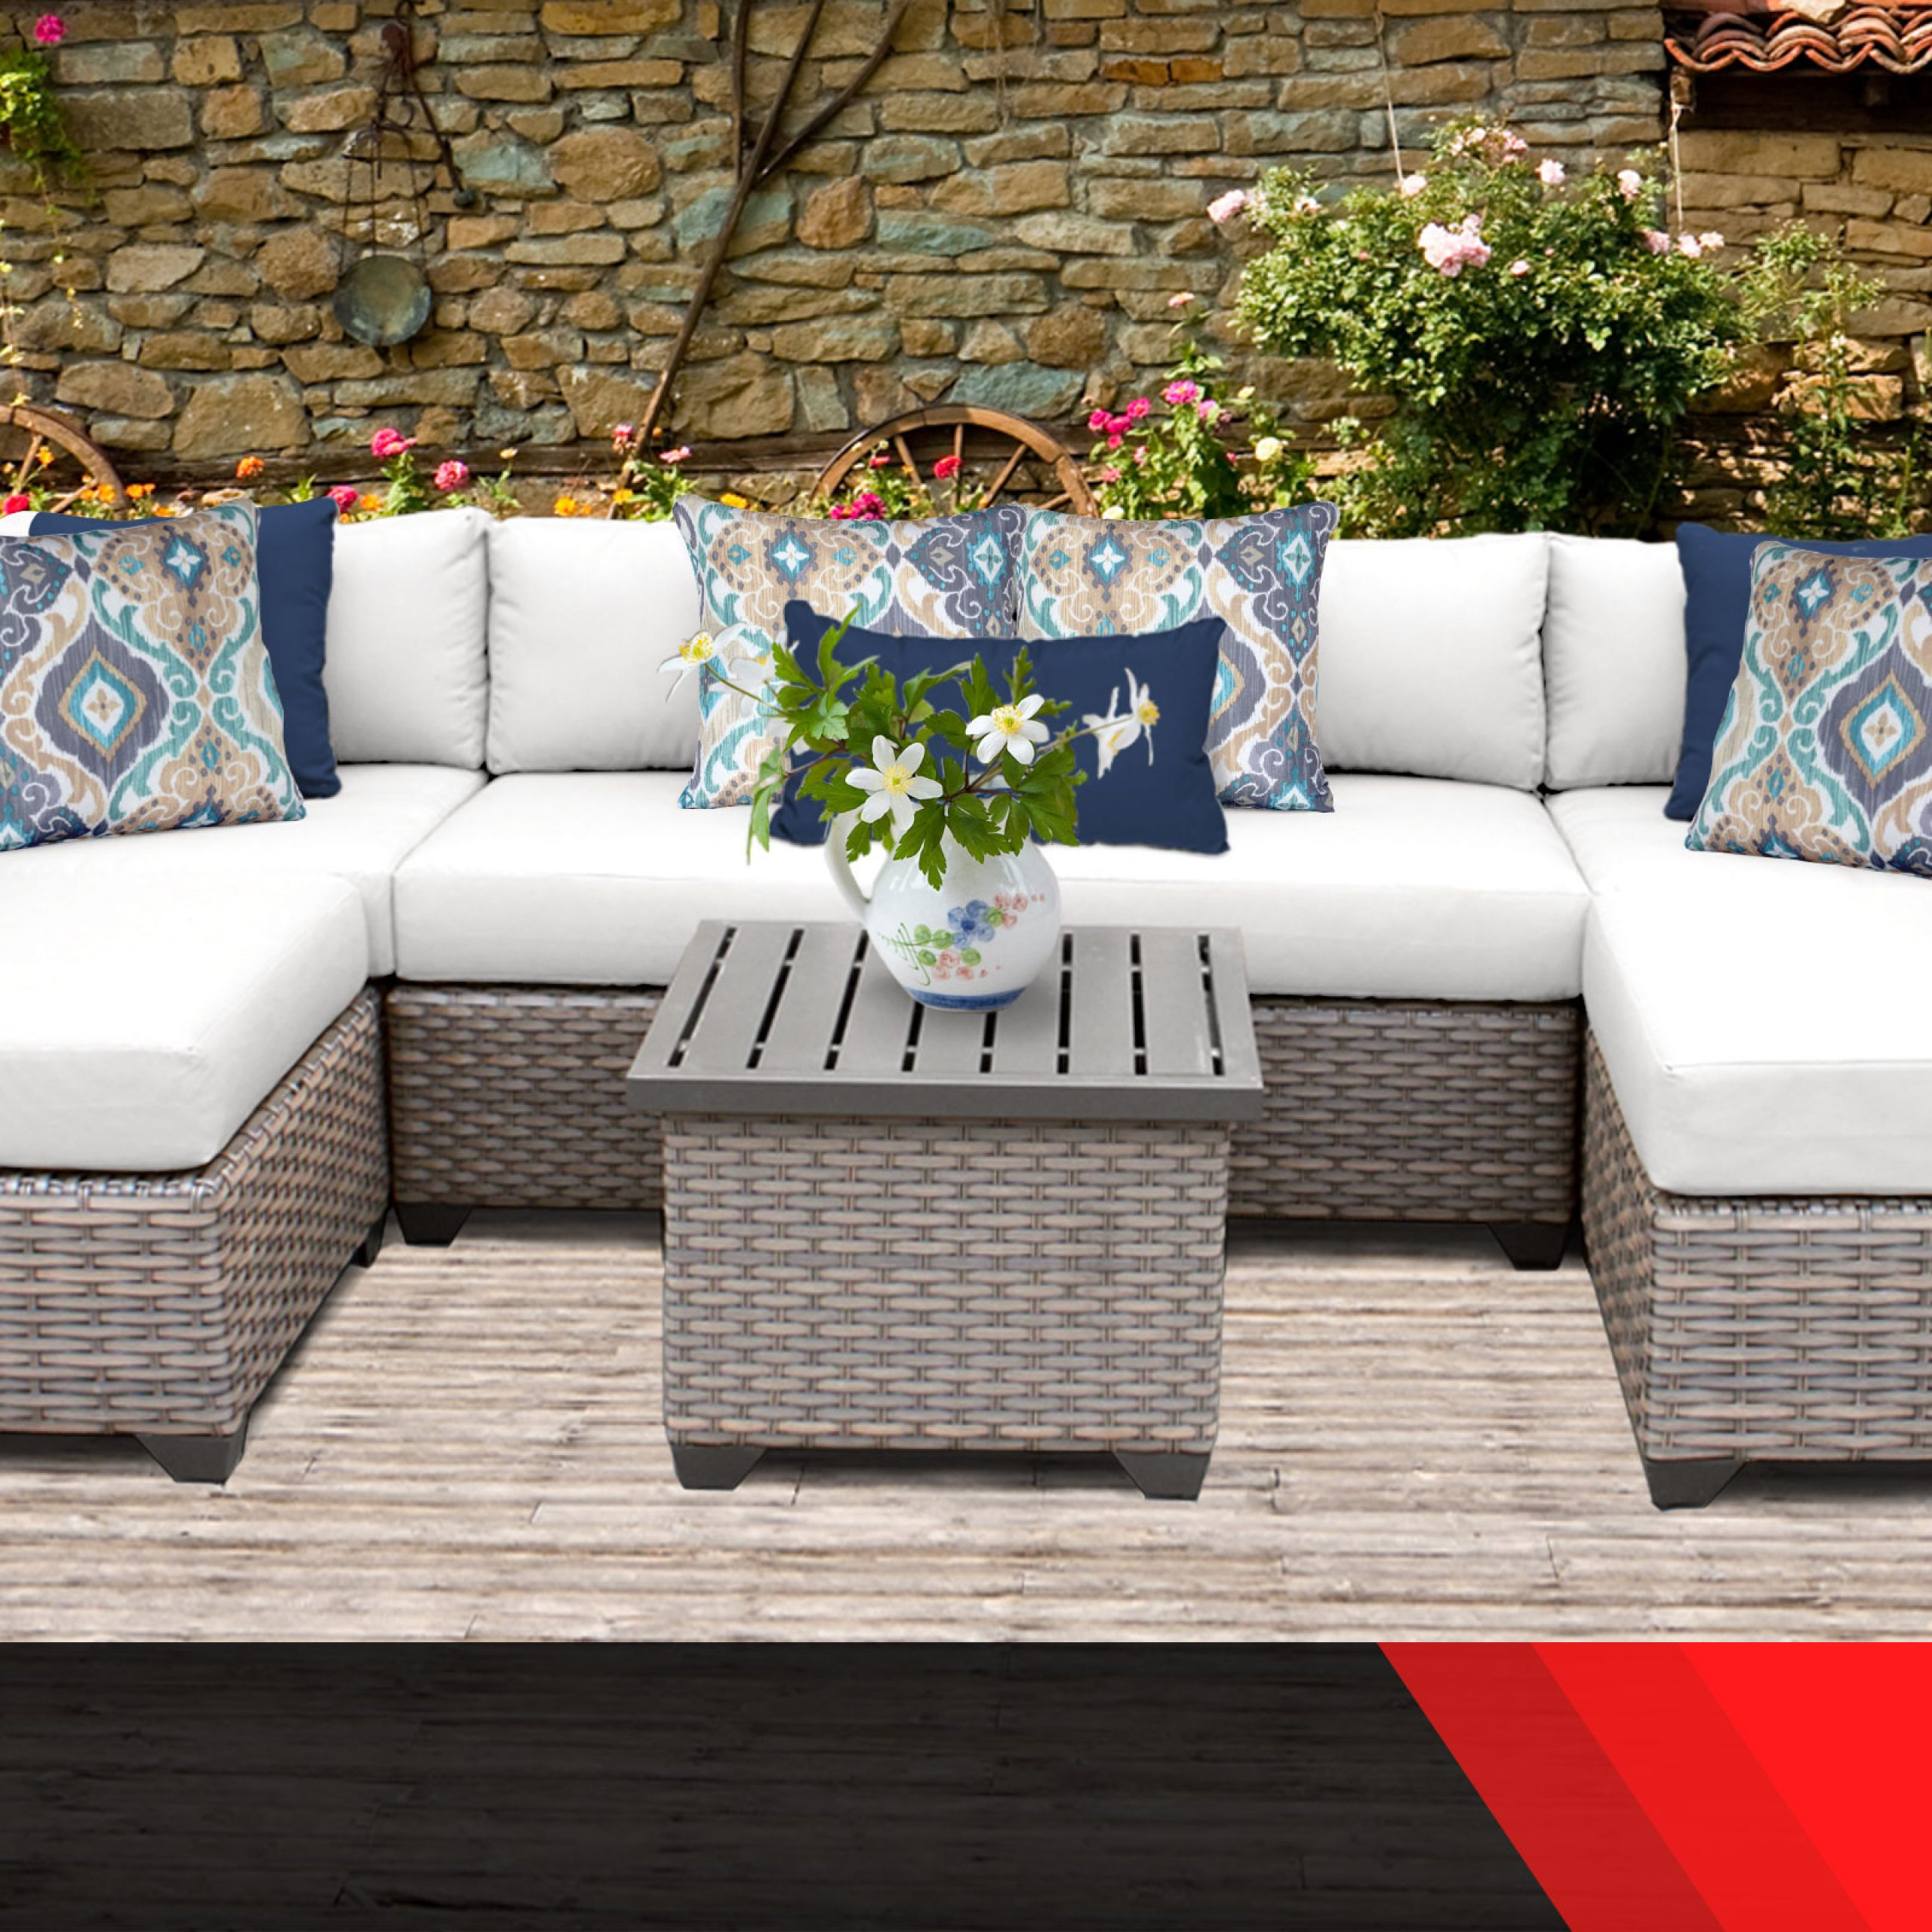 Popular Catalina Outdoor Sofas With Cushions For Details About Catalina 7 Piece Outdoor Wicker Patio Furniture Set 07c 2 For 1 (Gallery 8 of 11)